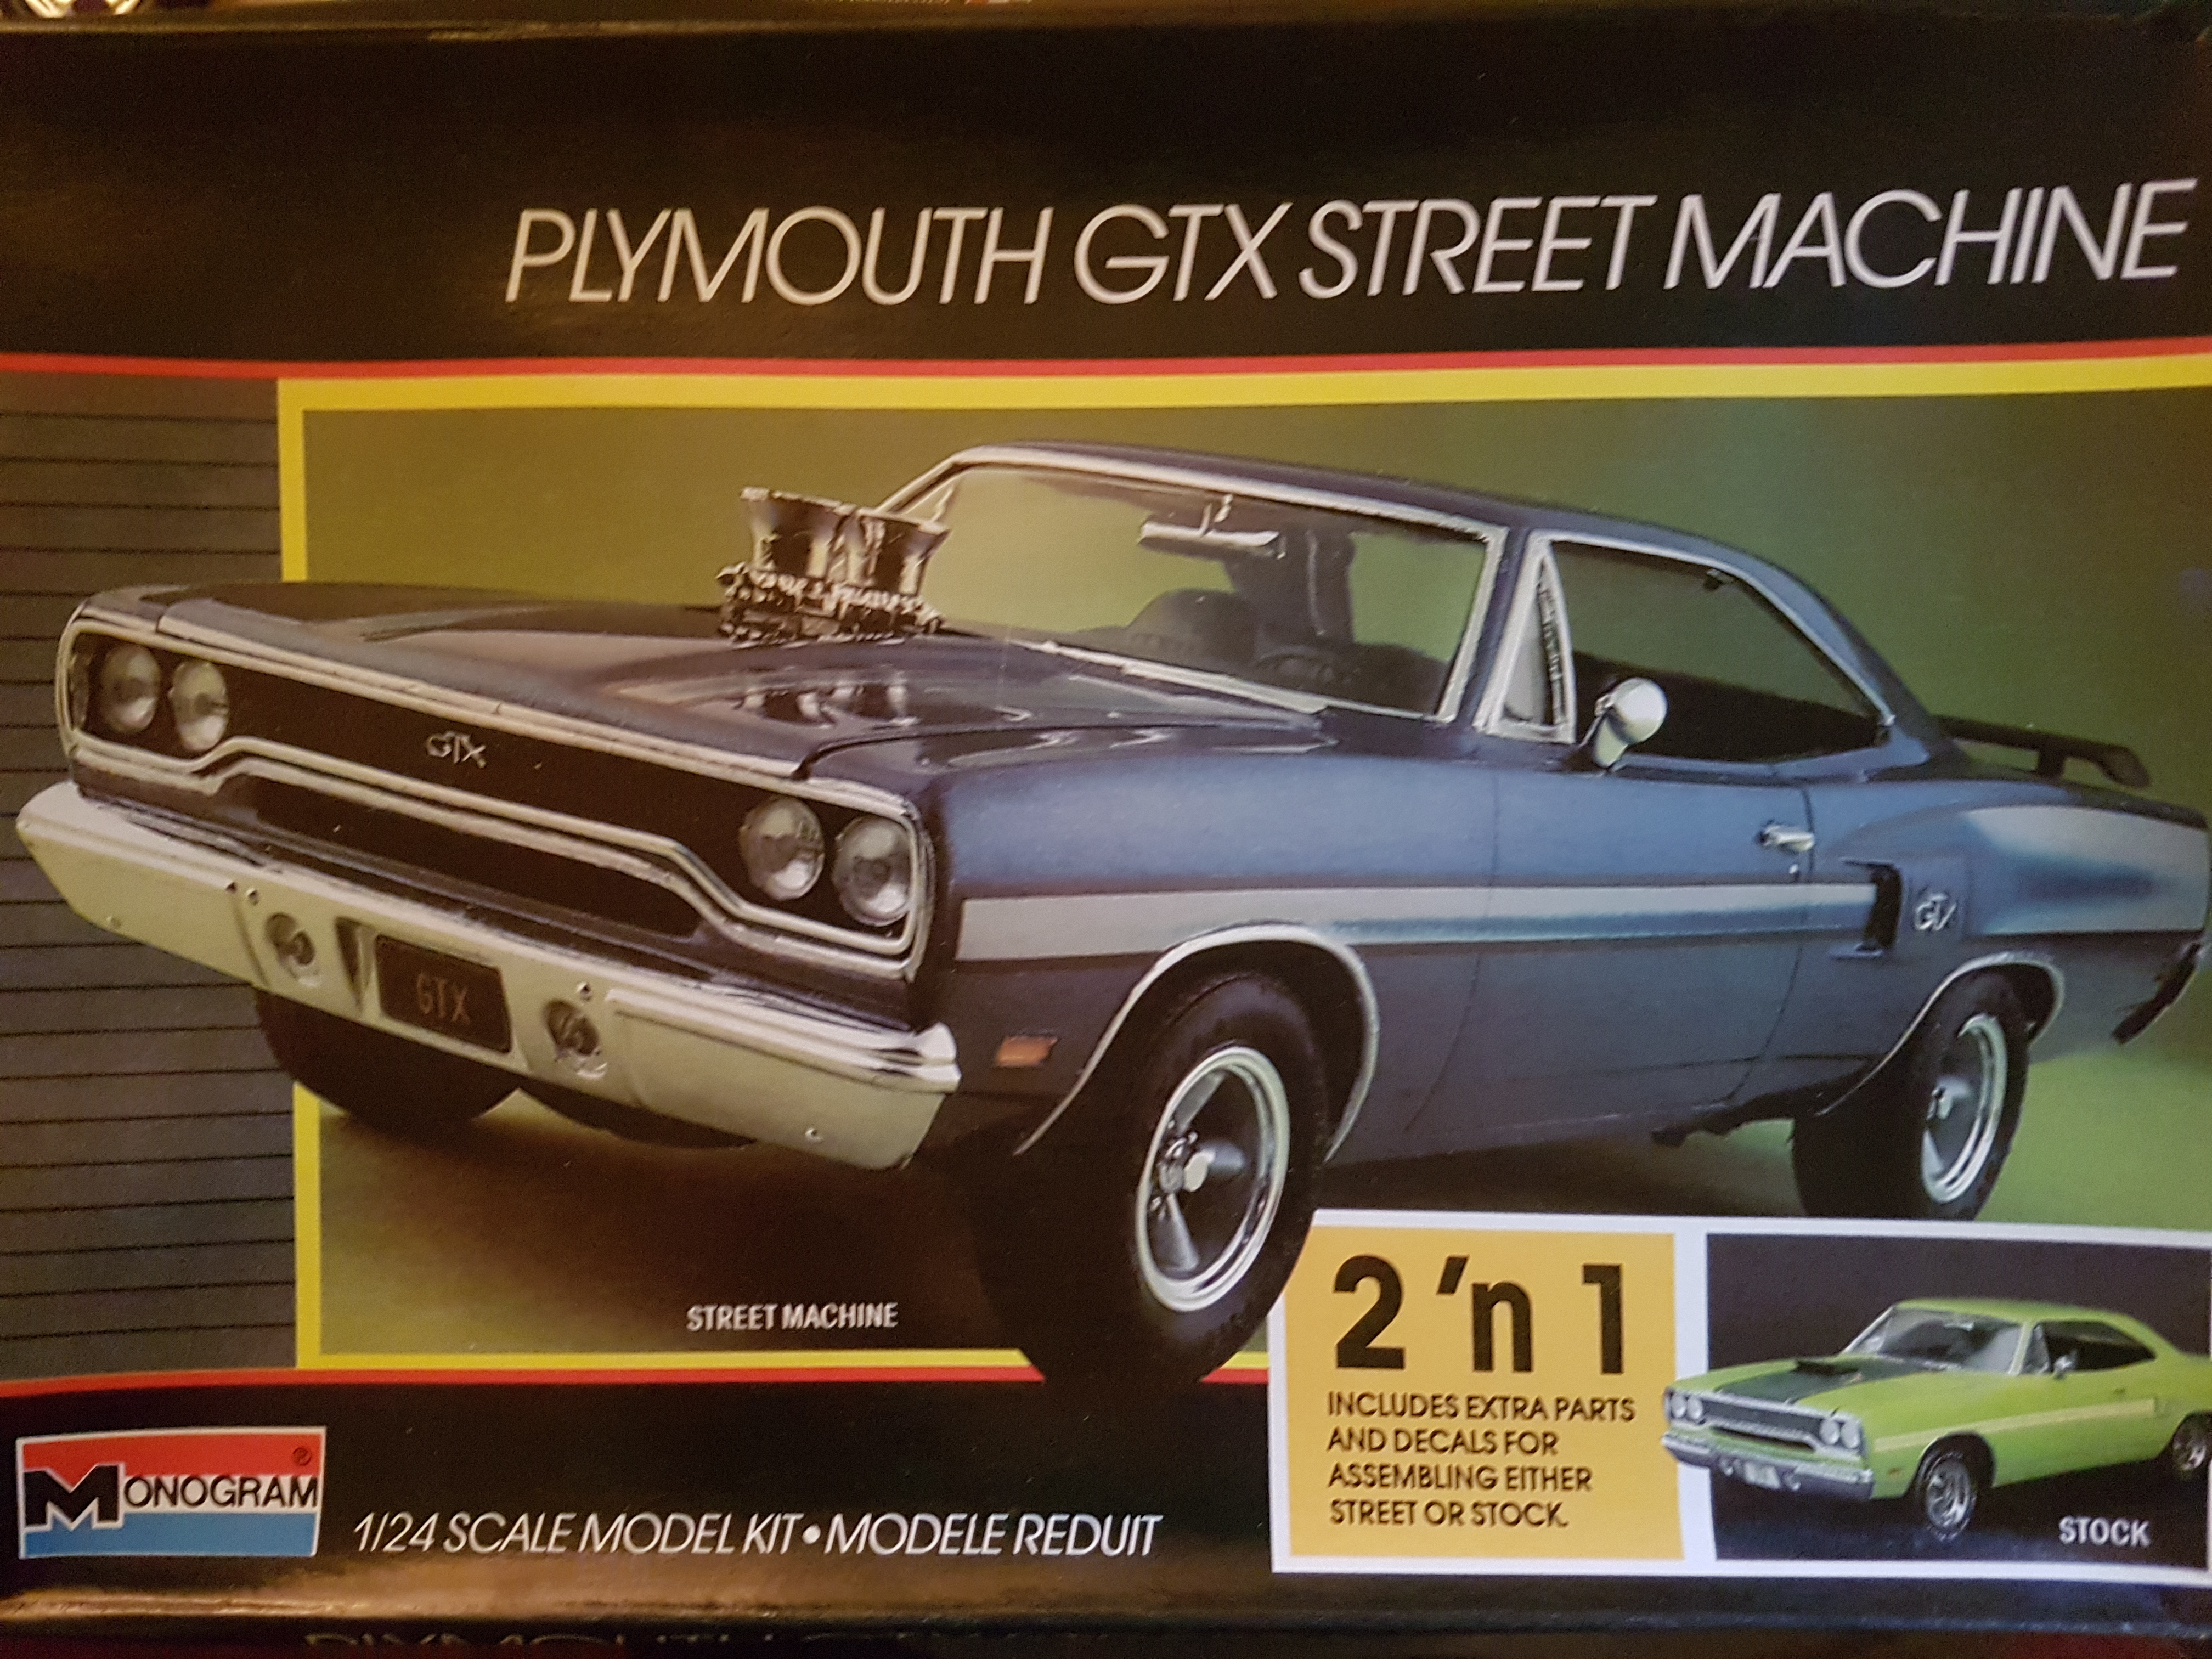 1970 Plymouth Gtx Wiring Harness Detailed Diagrams 69 Road Runner Diagram 440 6 Monogram Rays Kits 1968